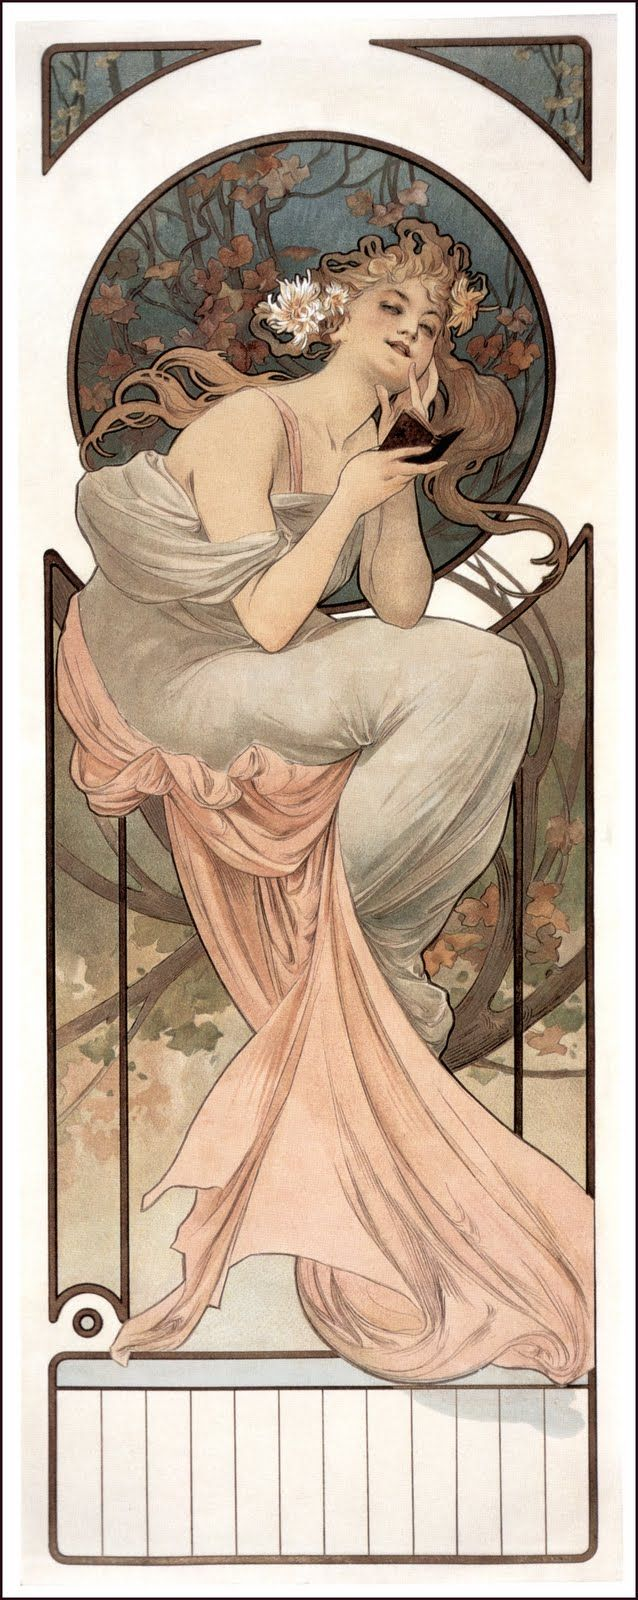 Love the look of bliss on her face - Alfons Mucha